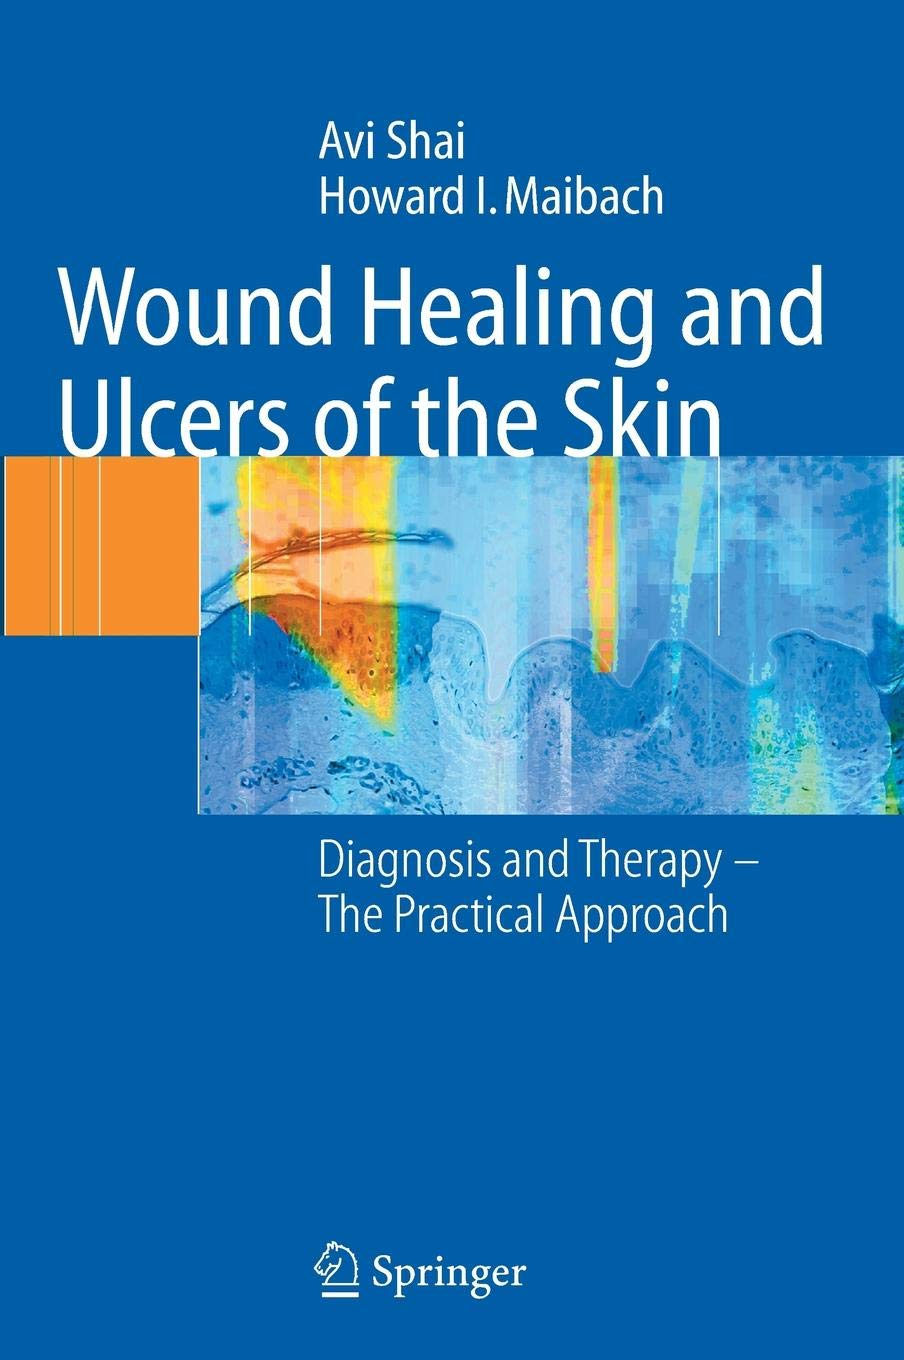 Wound Healing and Ulcers of the Skin: Diagnosis and Therapy - The Practical Approach